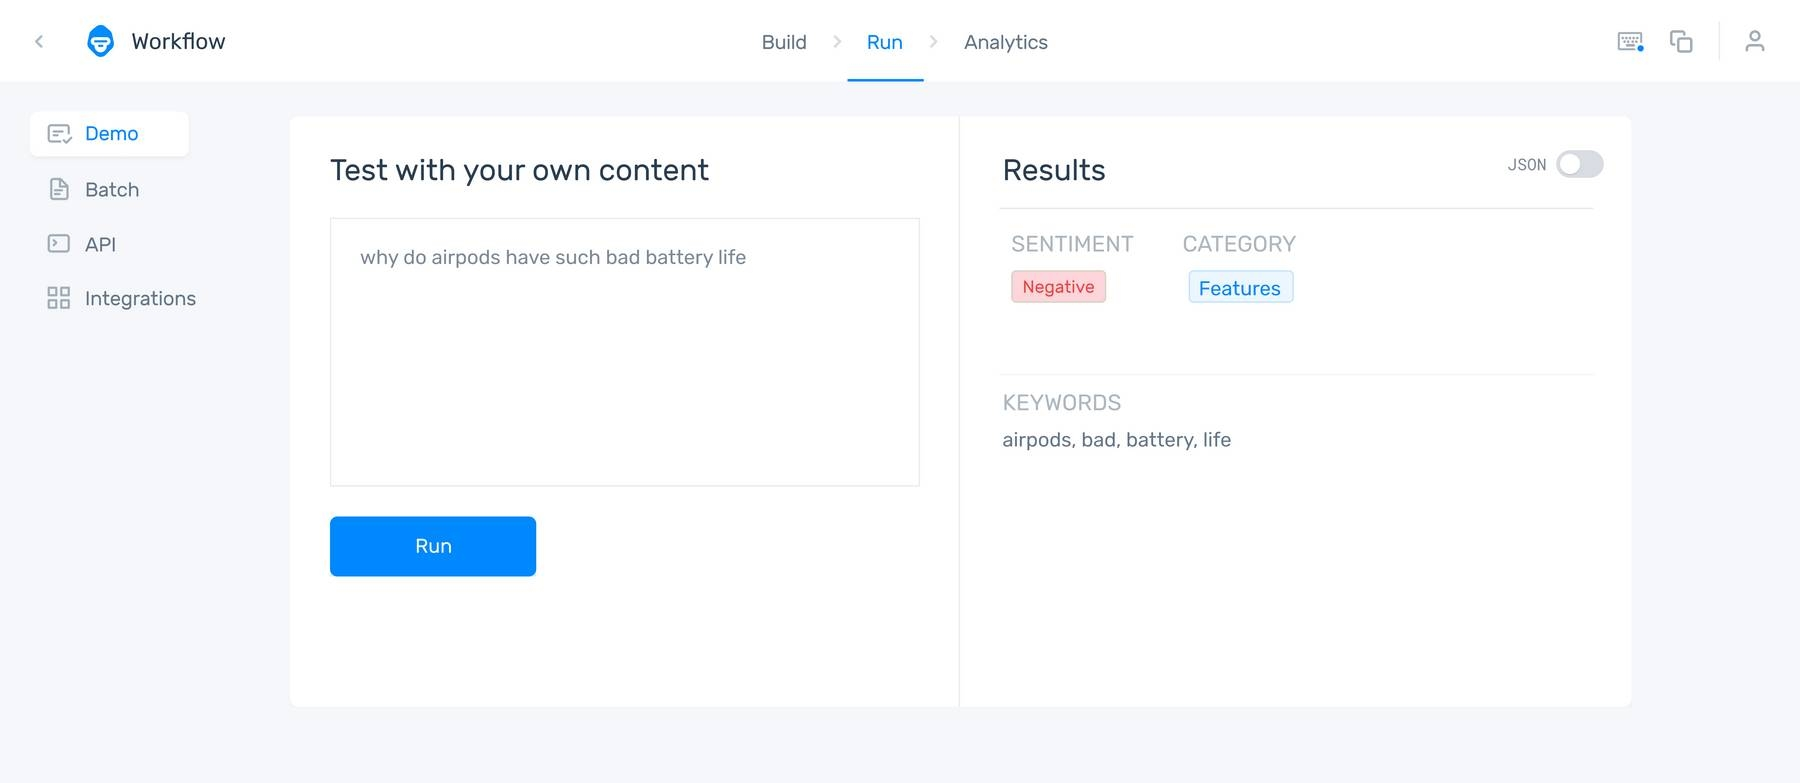 An aspect-based sentiment analysis worflow analysing the tweet 'why do airpods have such bad battery life' with a 'negative' sentiment and a 'features' classsification.